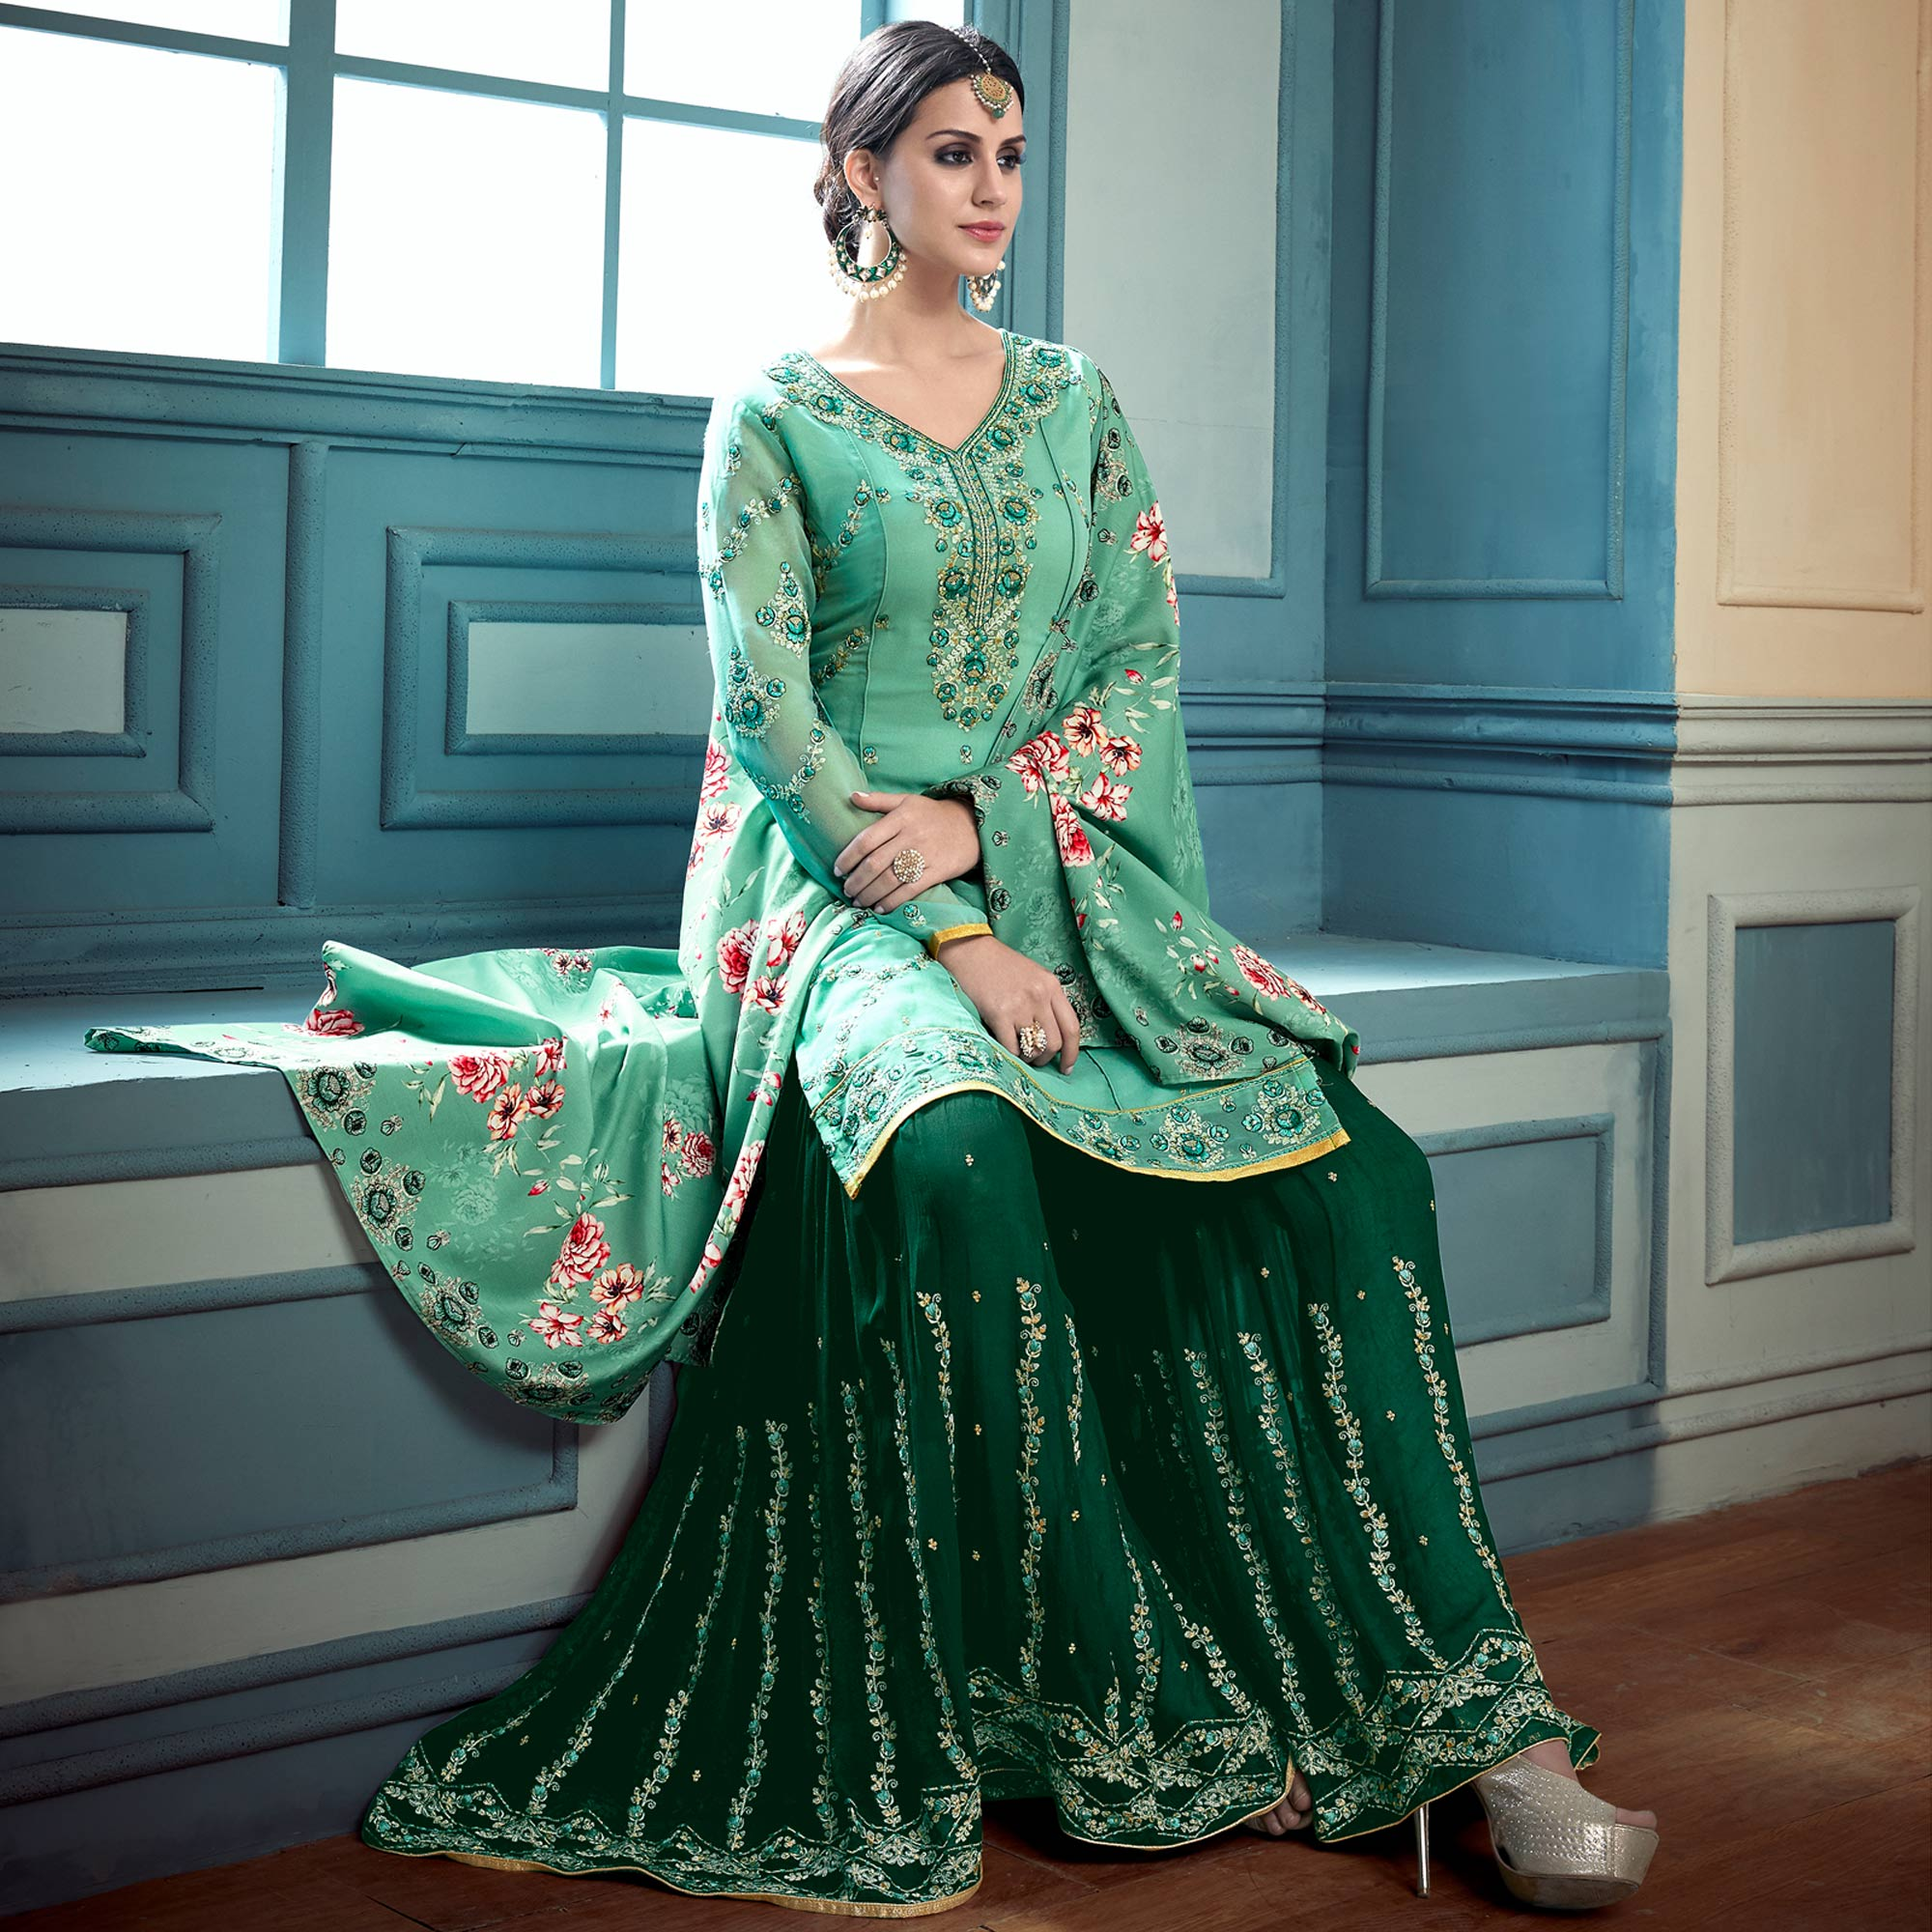 Stunning Turquoise Green Colored Partywear Embroidered Faux Georgette Palazzo Suit